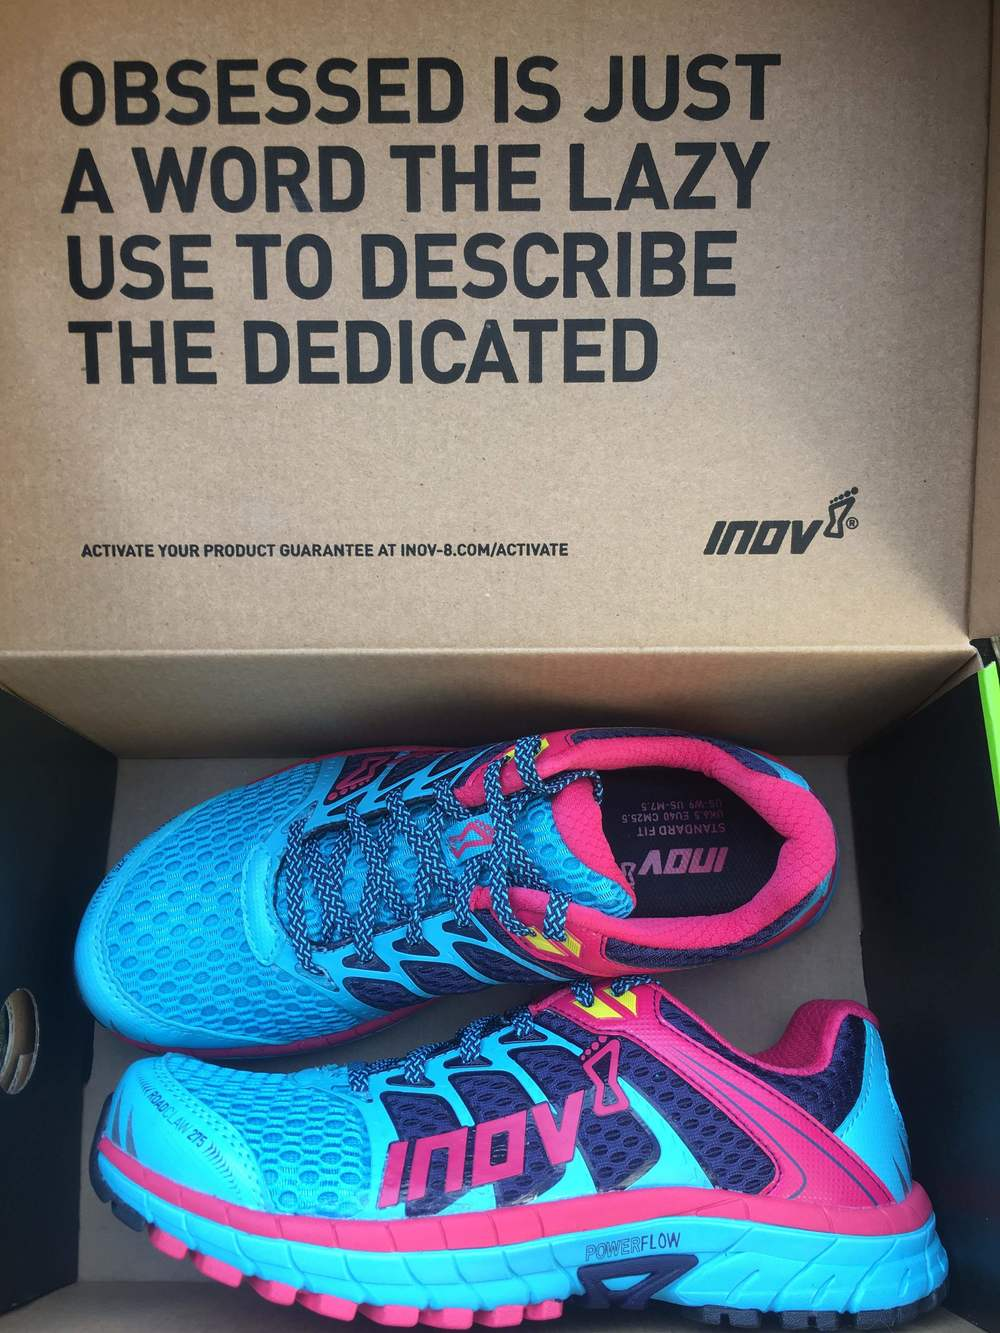 The road claws from Inov-8 that passed the test. Love the messaging!